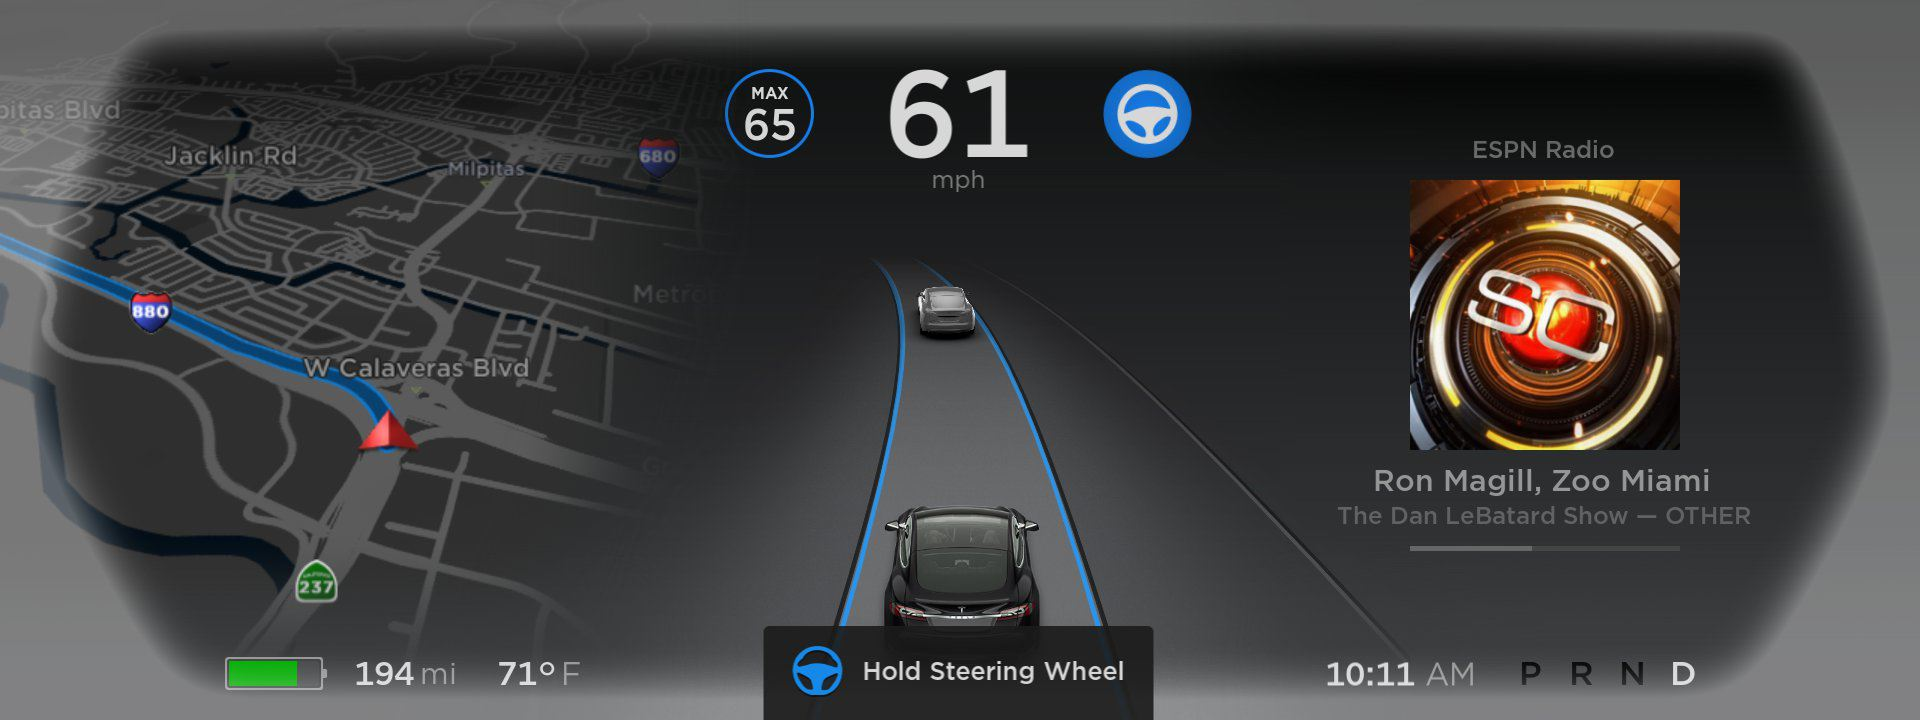 tesla-close-to-level-5-autonomous-system-1